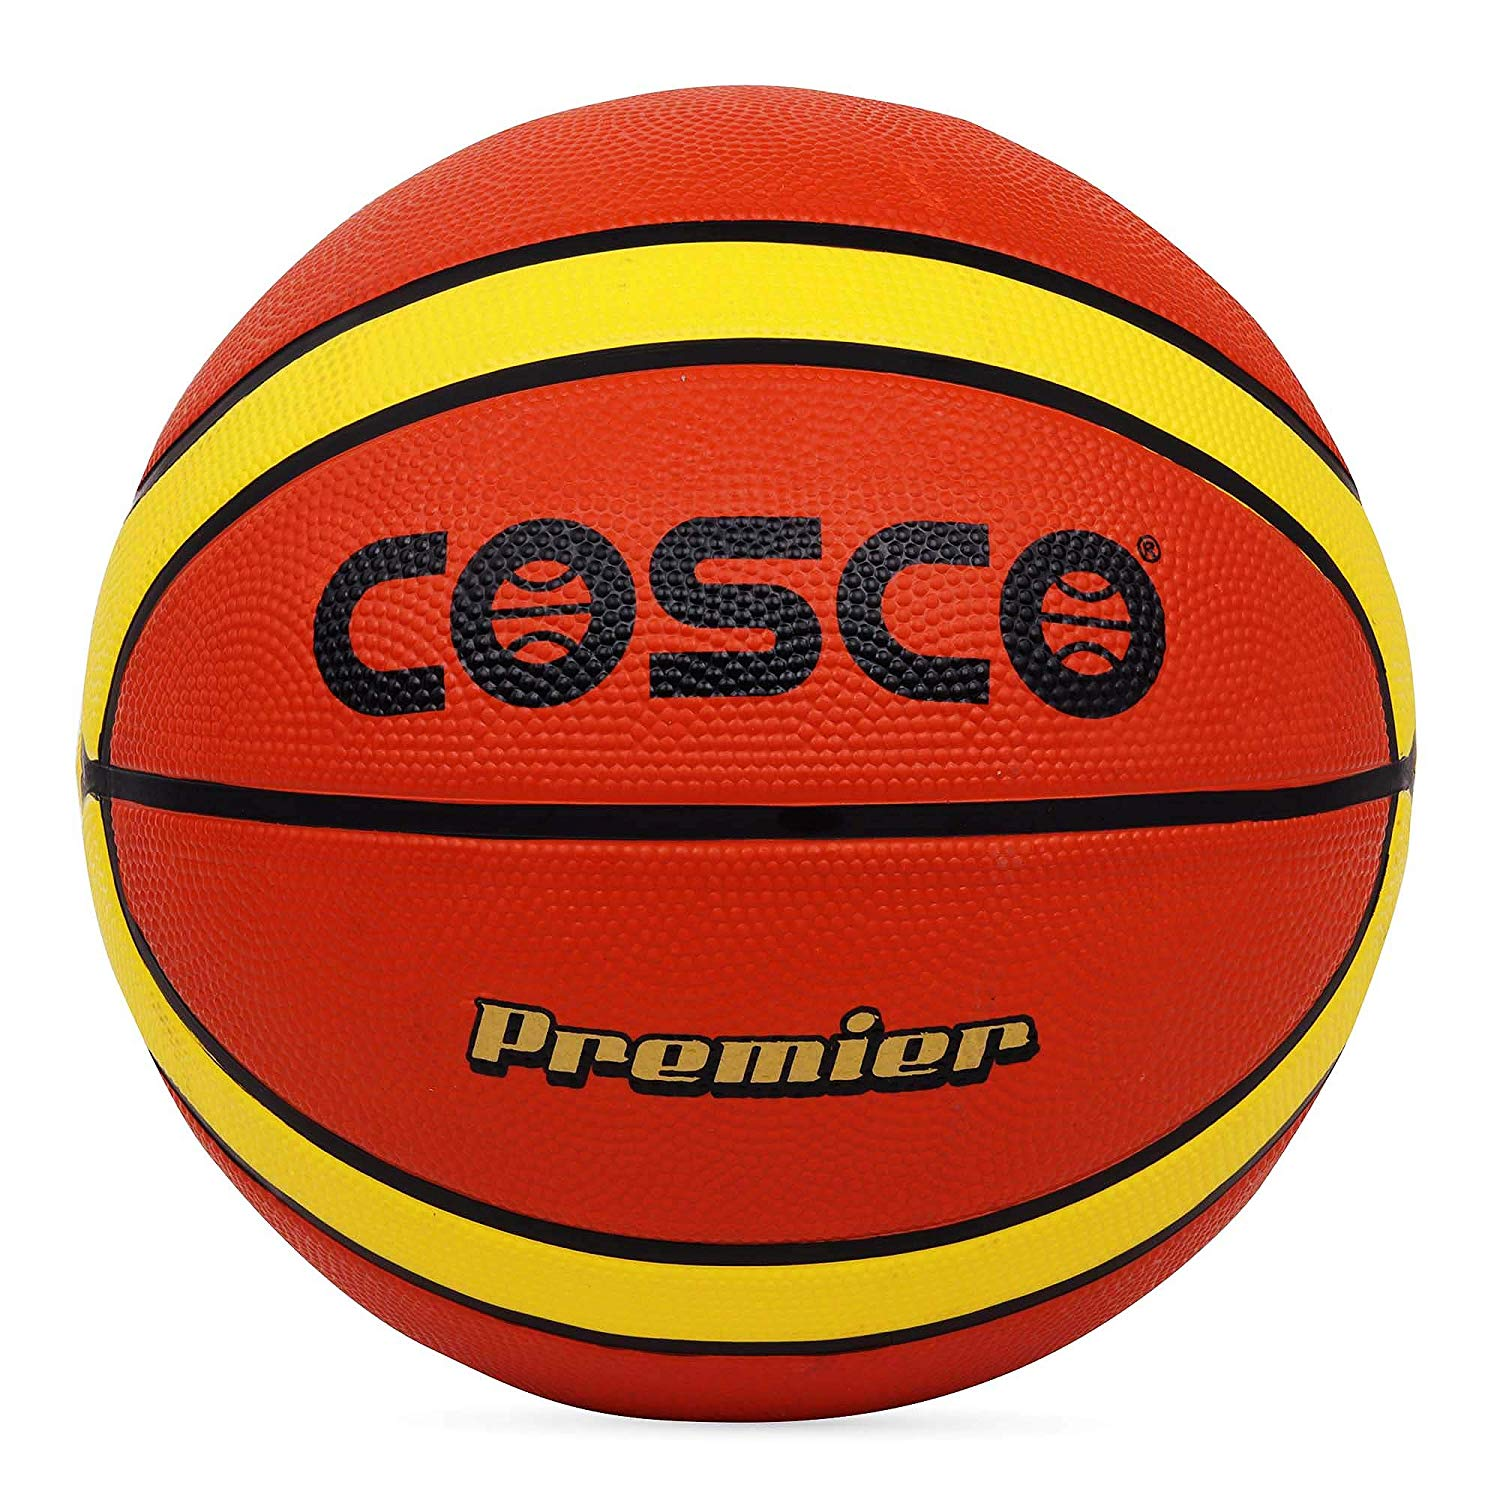 Cosco Premier Basketball - Size 5